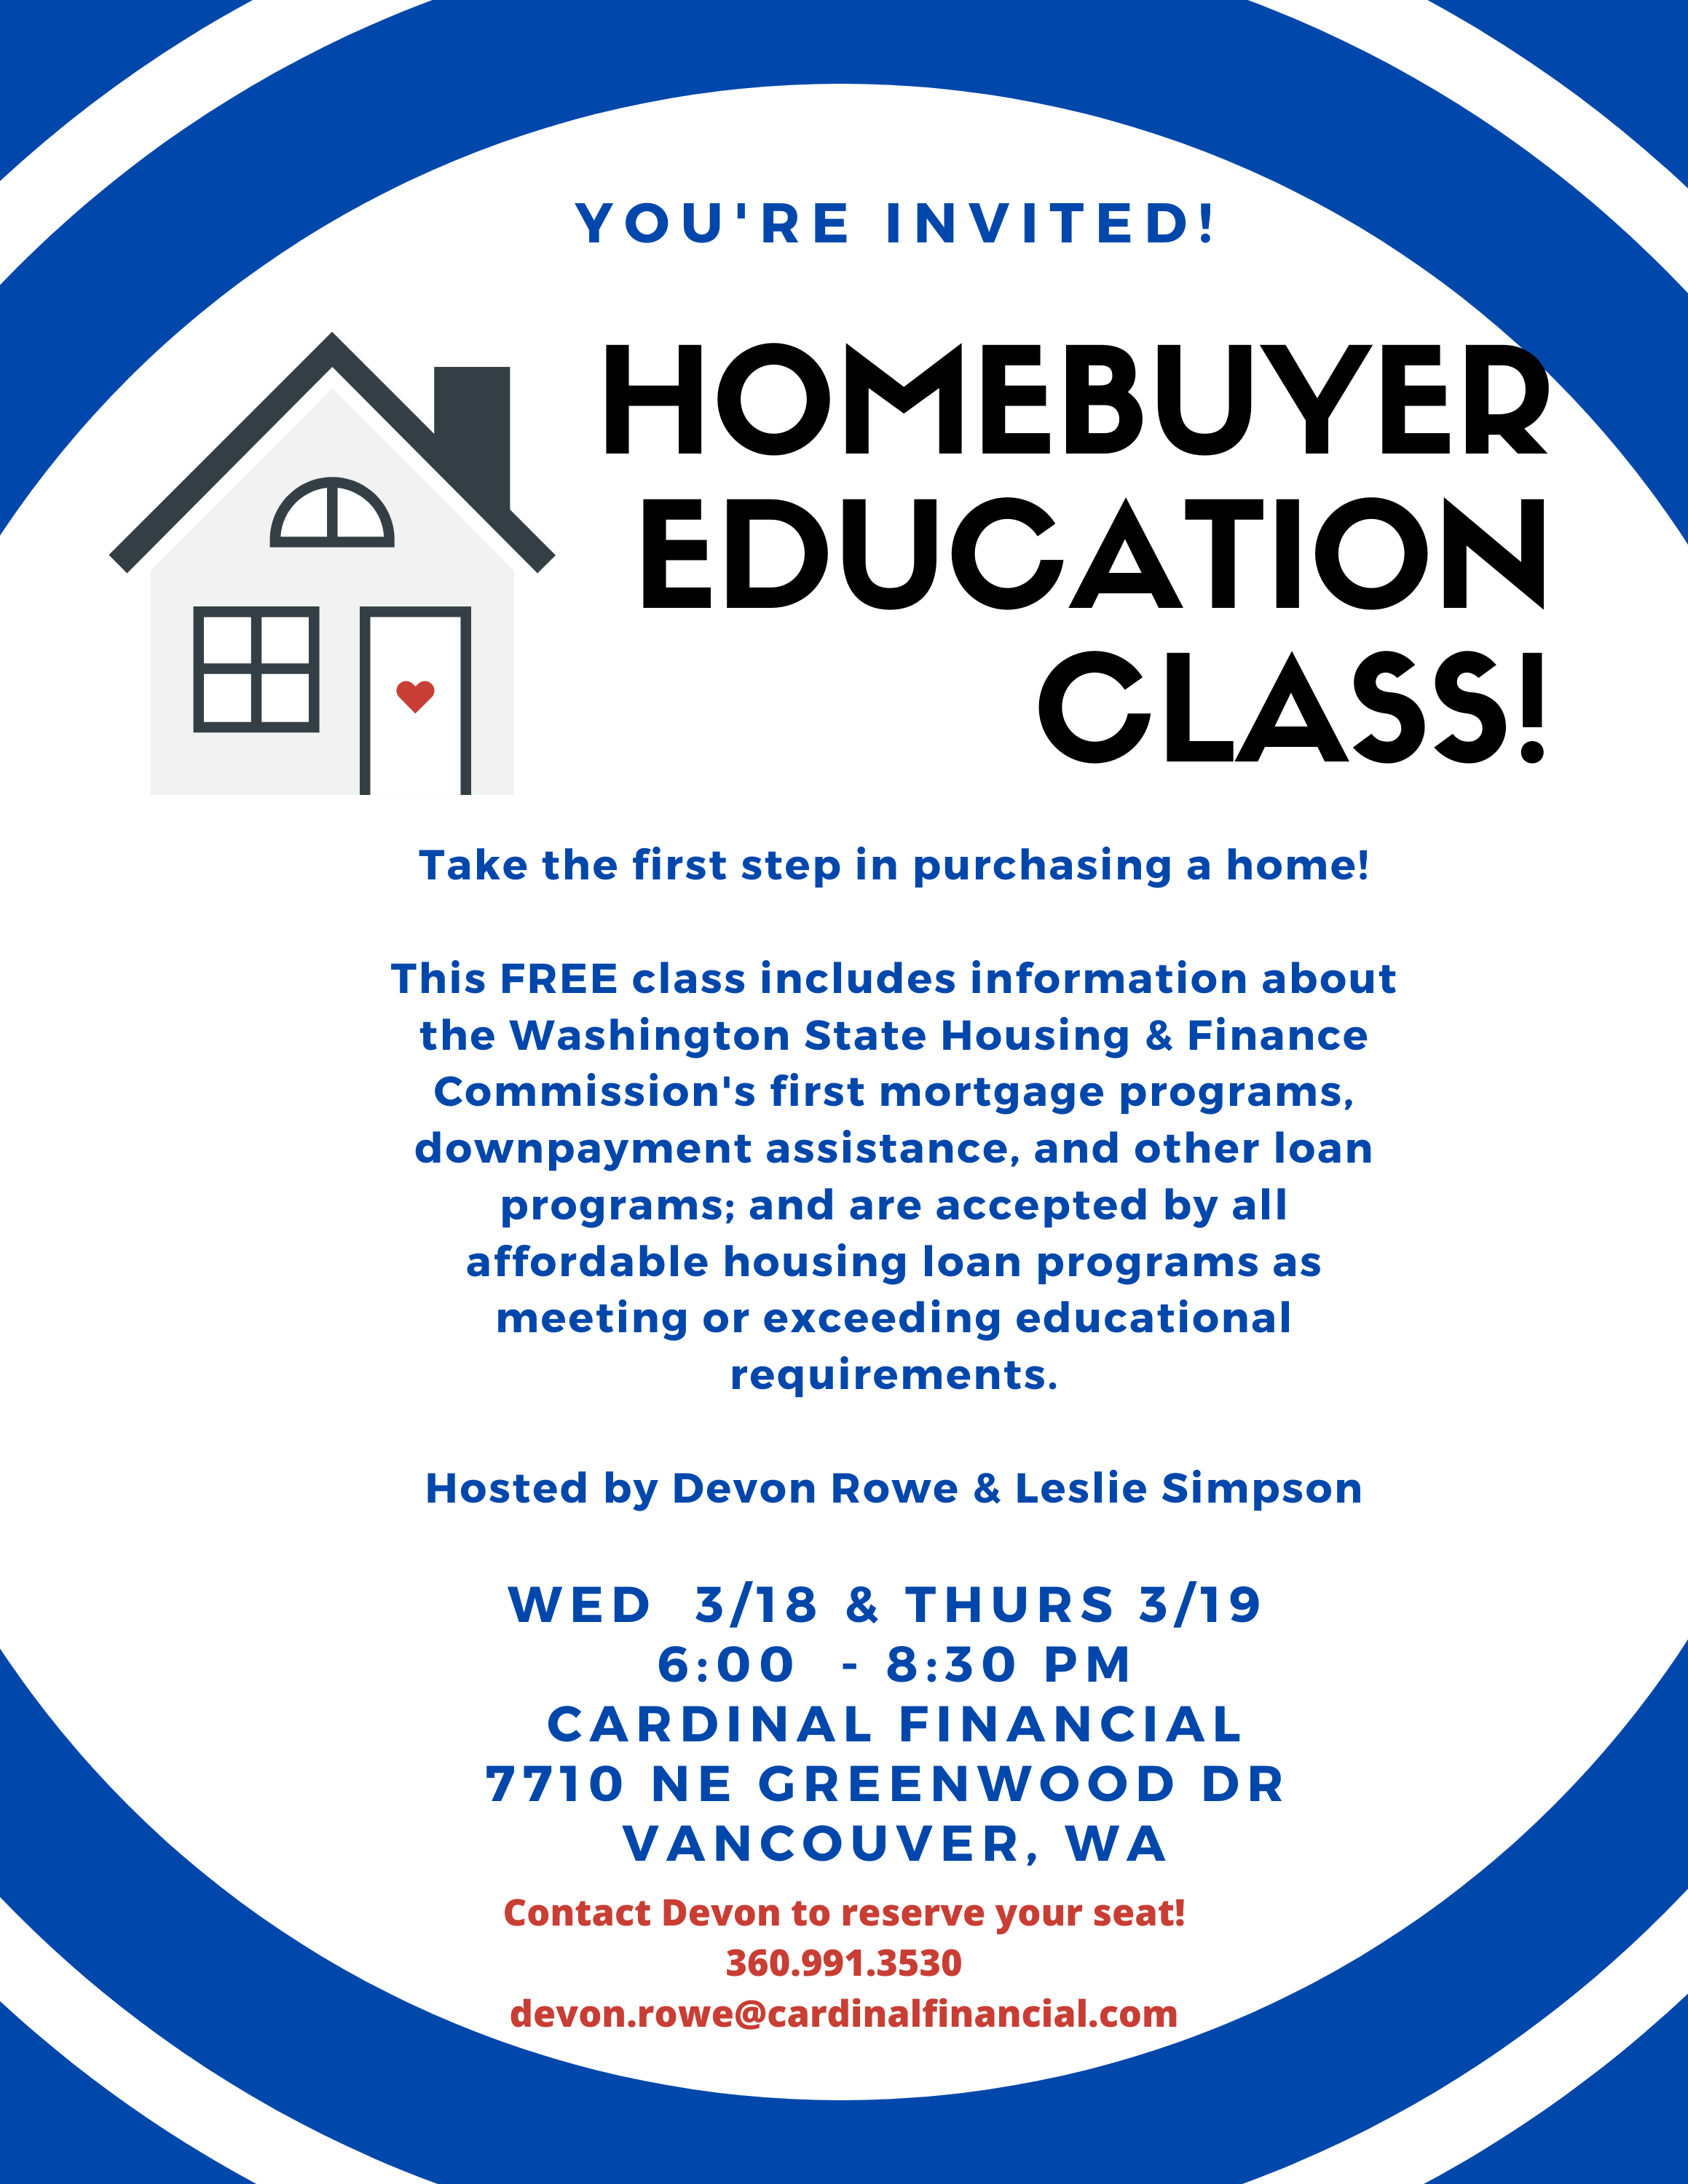 HomeBuyer Ed class invite.png